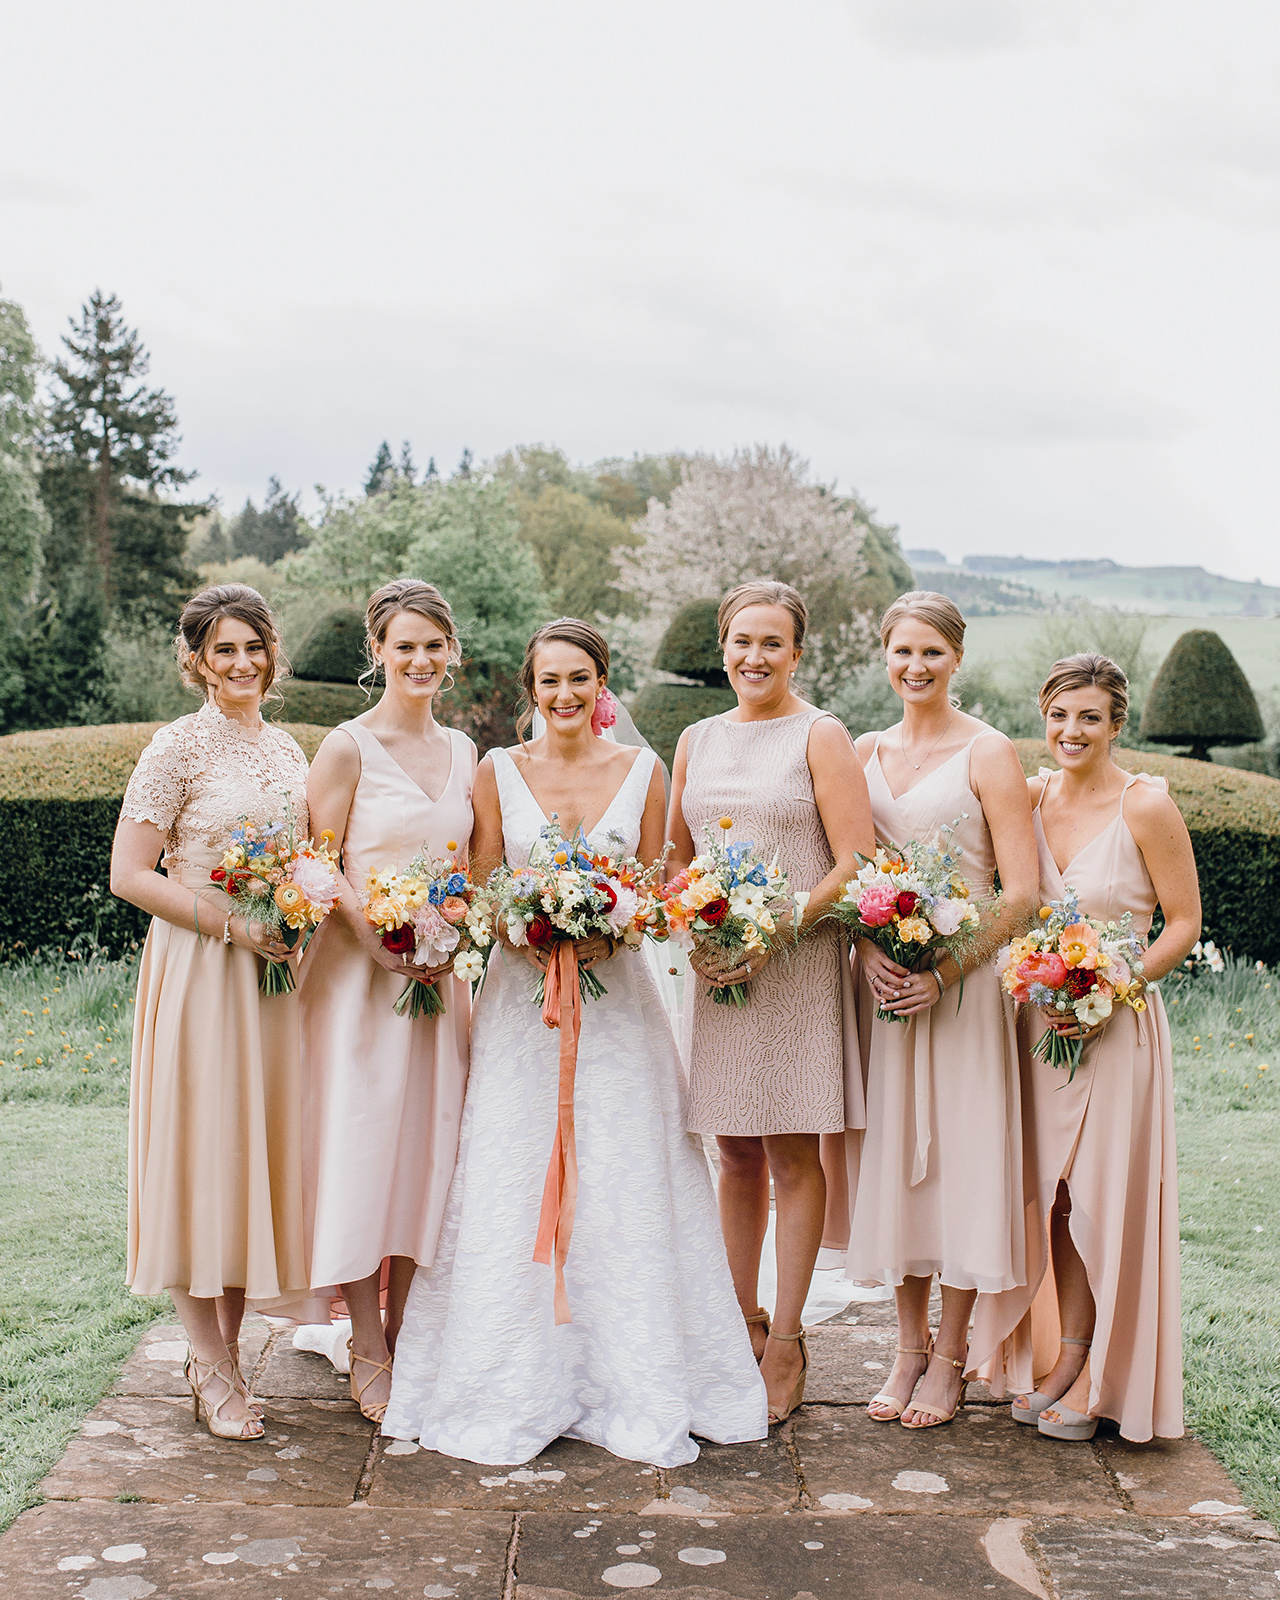 bride posing with bridesmaids in blush dresses